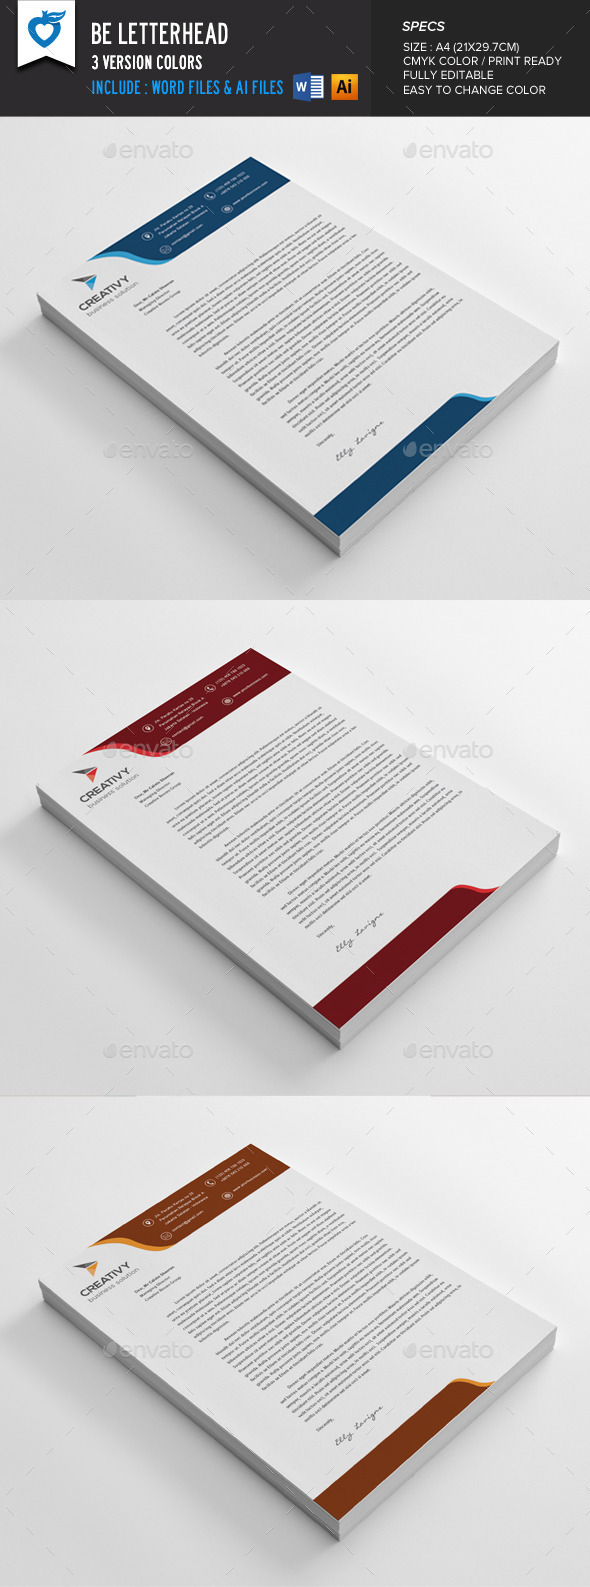 12 Free Letterhead Templates in PSD MS Word and PDF Format – Free Business Letterhead Templates for Word